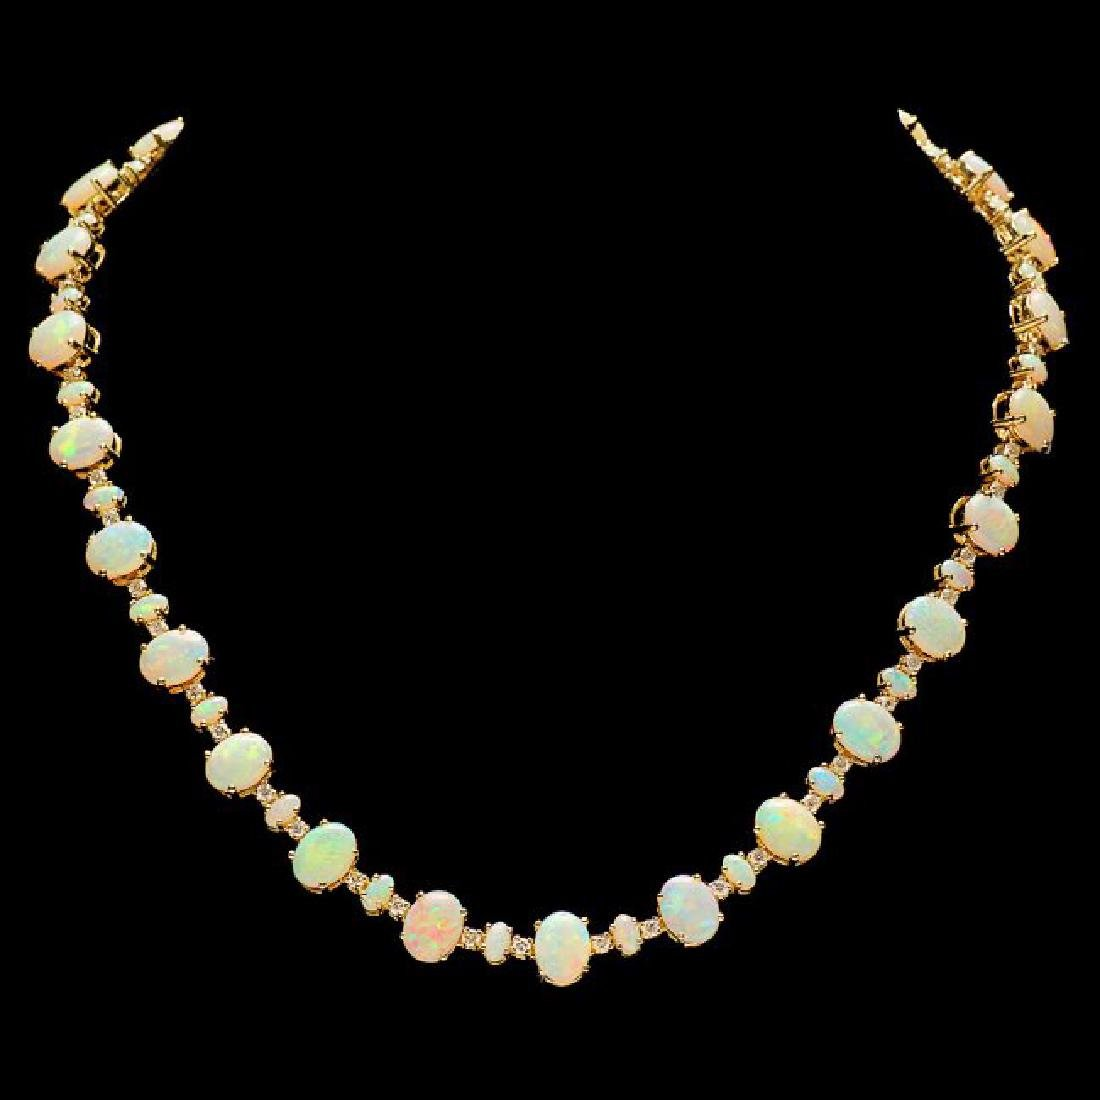 14k Yellow Gold 32ct Opal 2.25ct Diamond Necklace